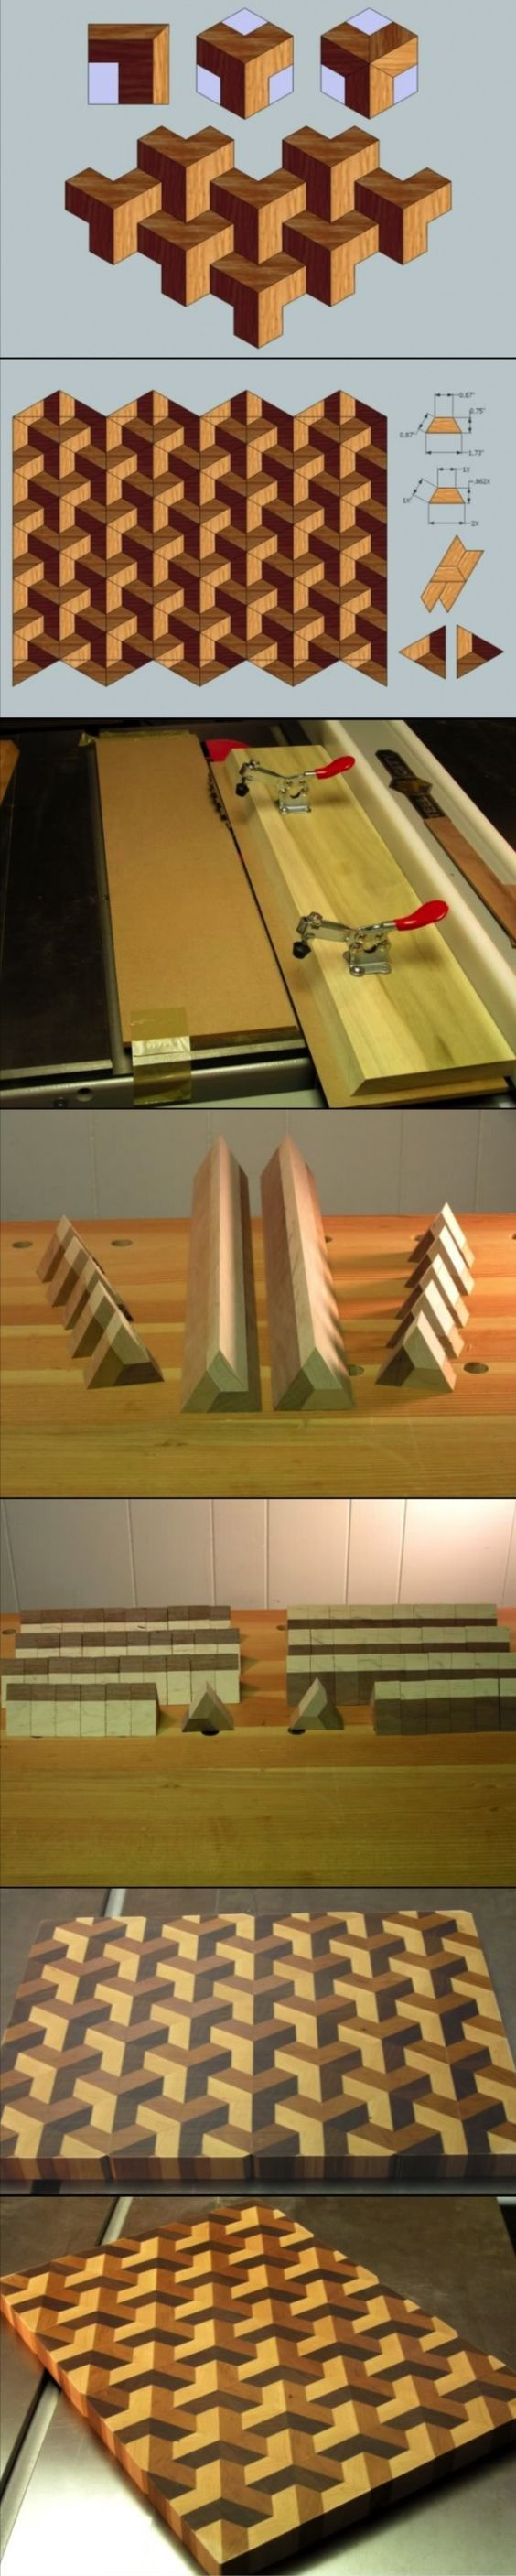 Best 32 Best Easy Woodworking Projects Images On Pinterest 400 x 300